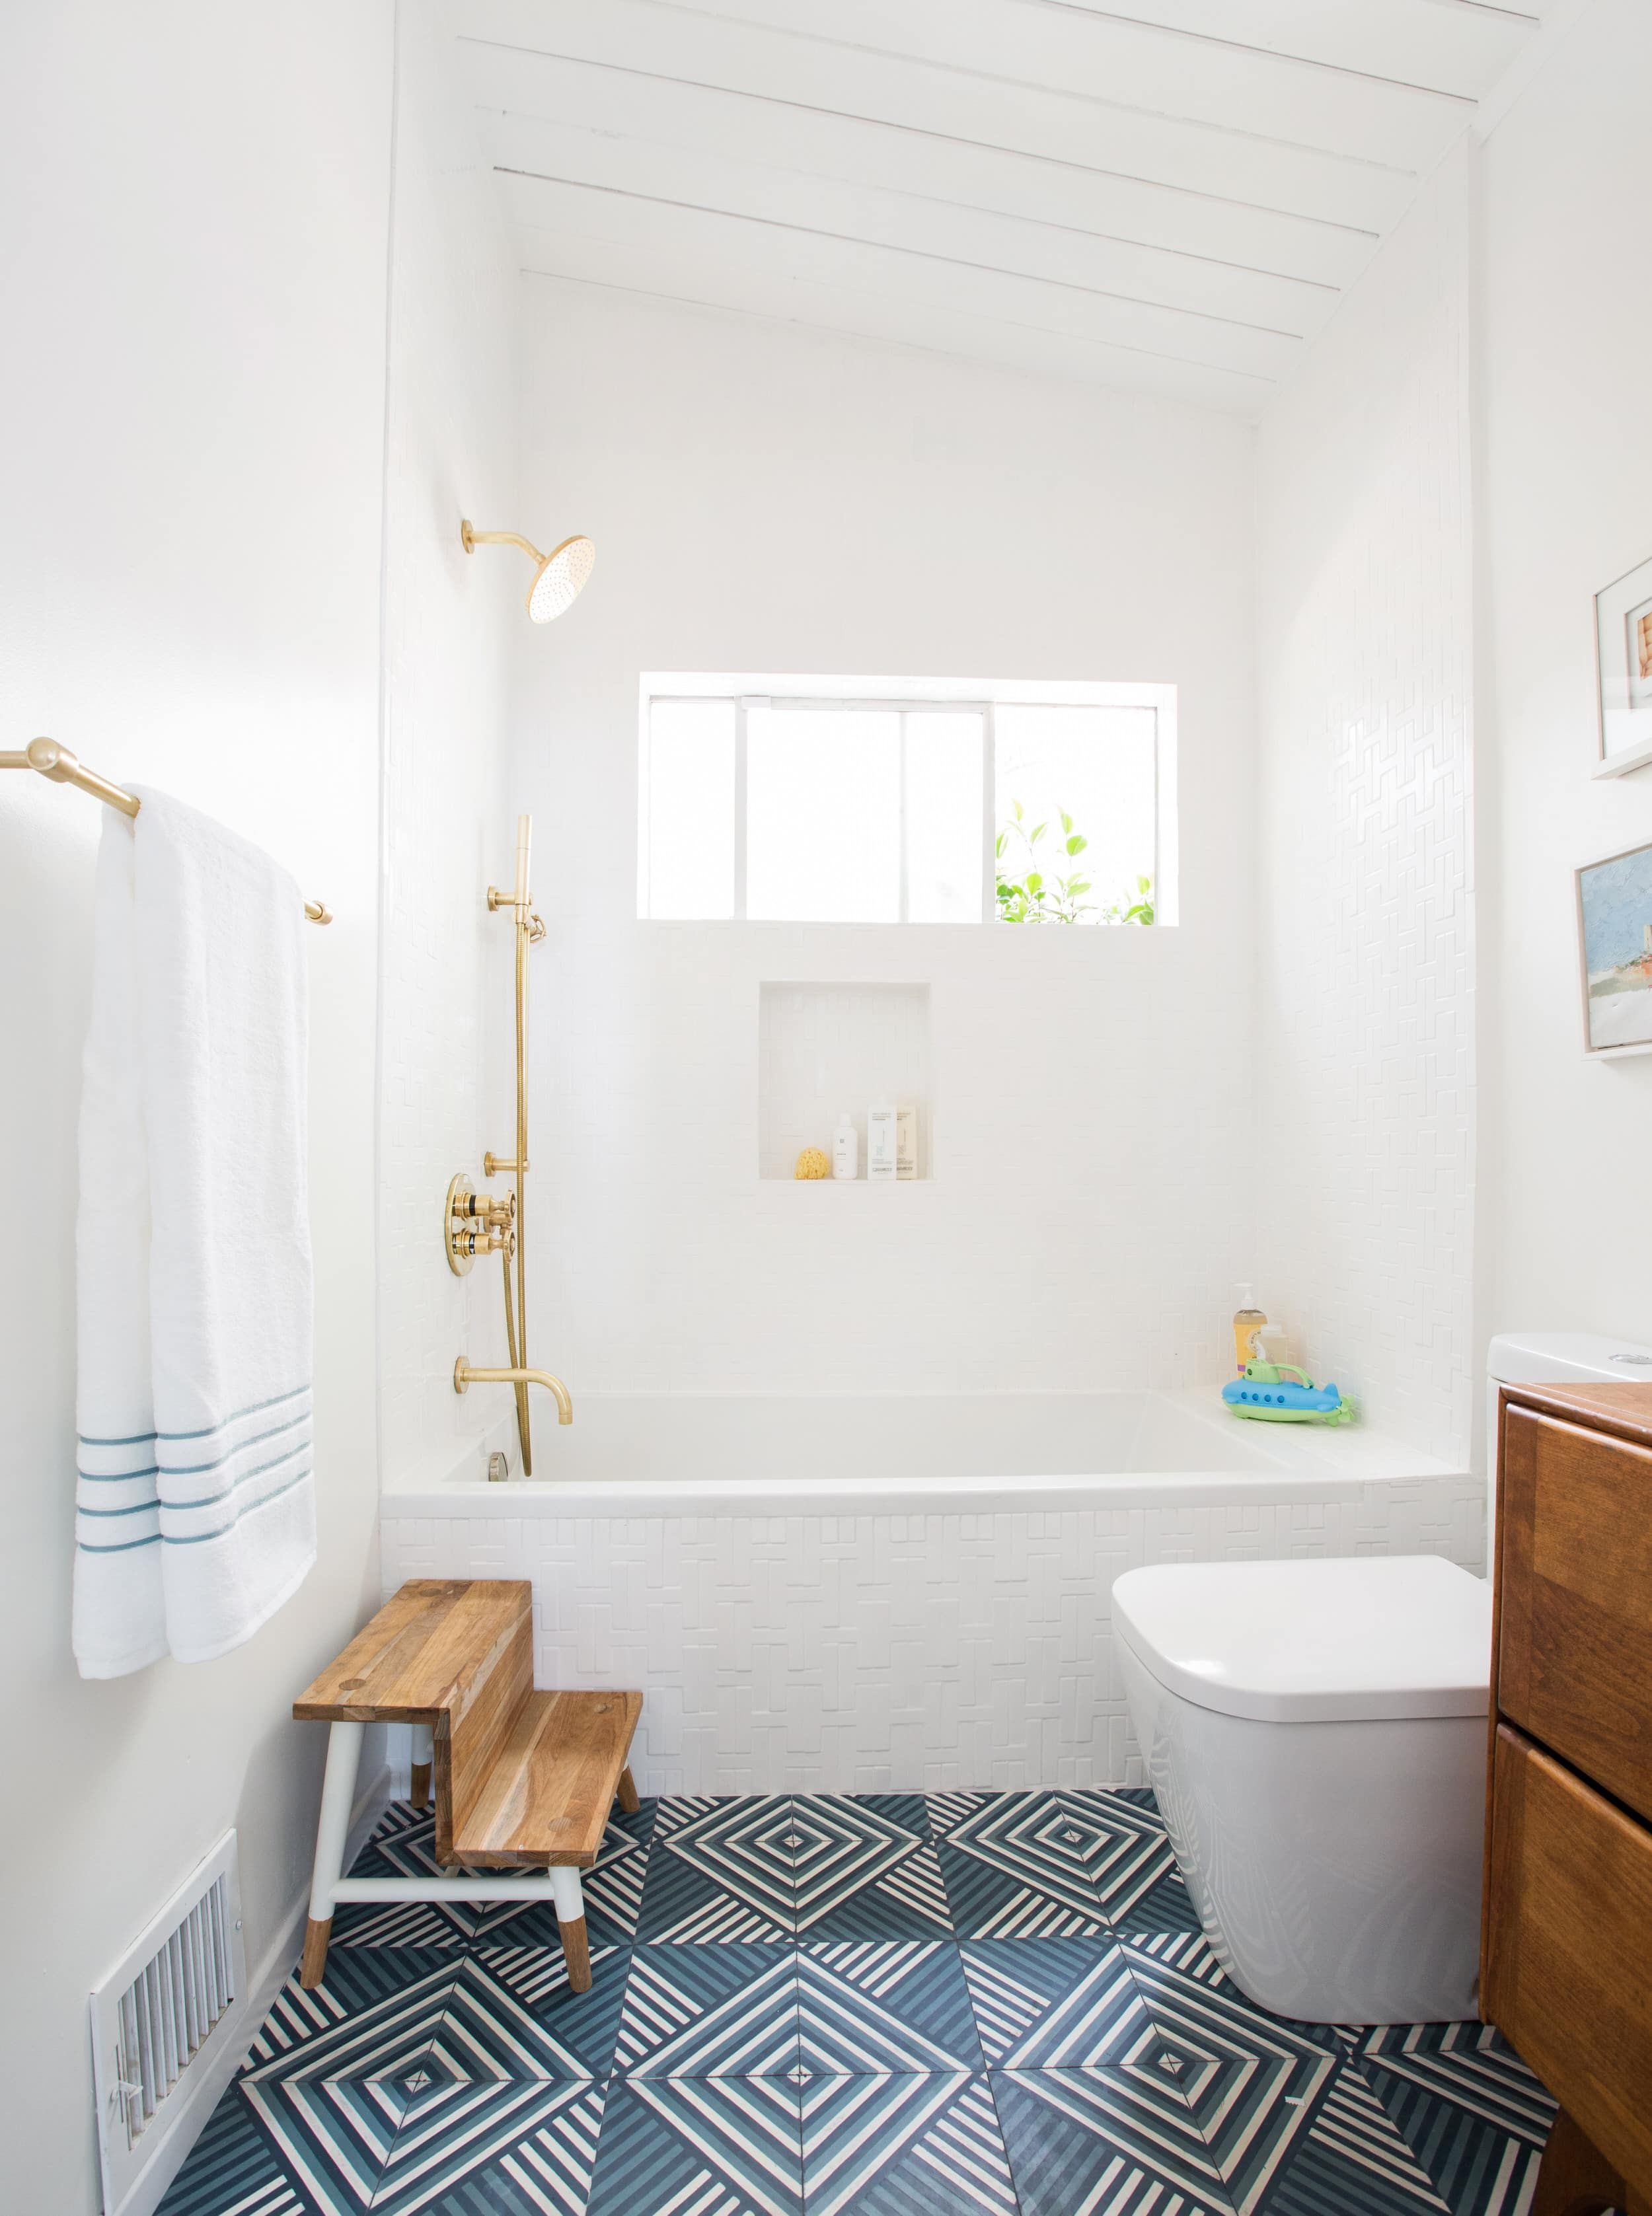 If You Think Your Rental Bathroom is Beyond Help, This Post is For